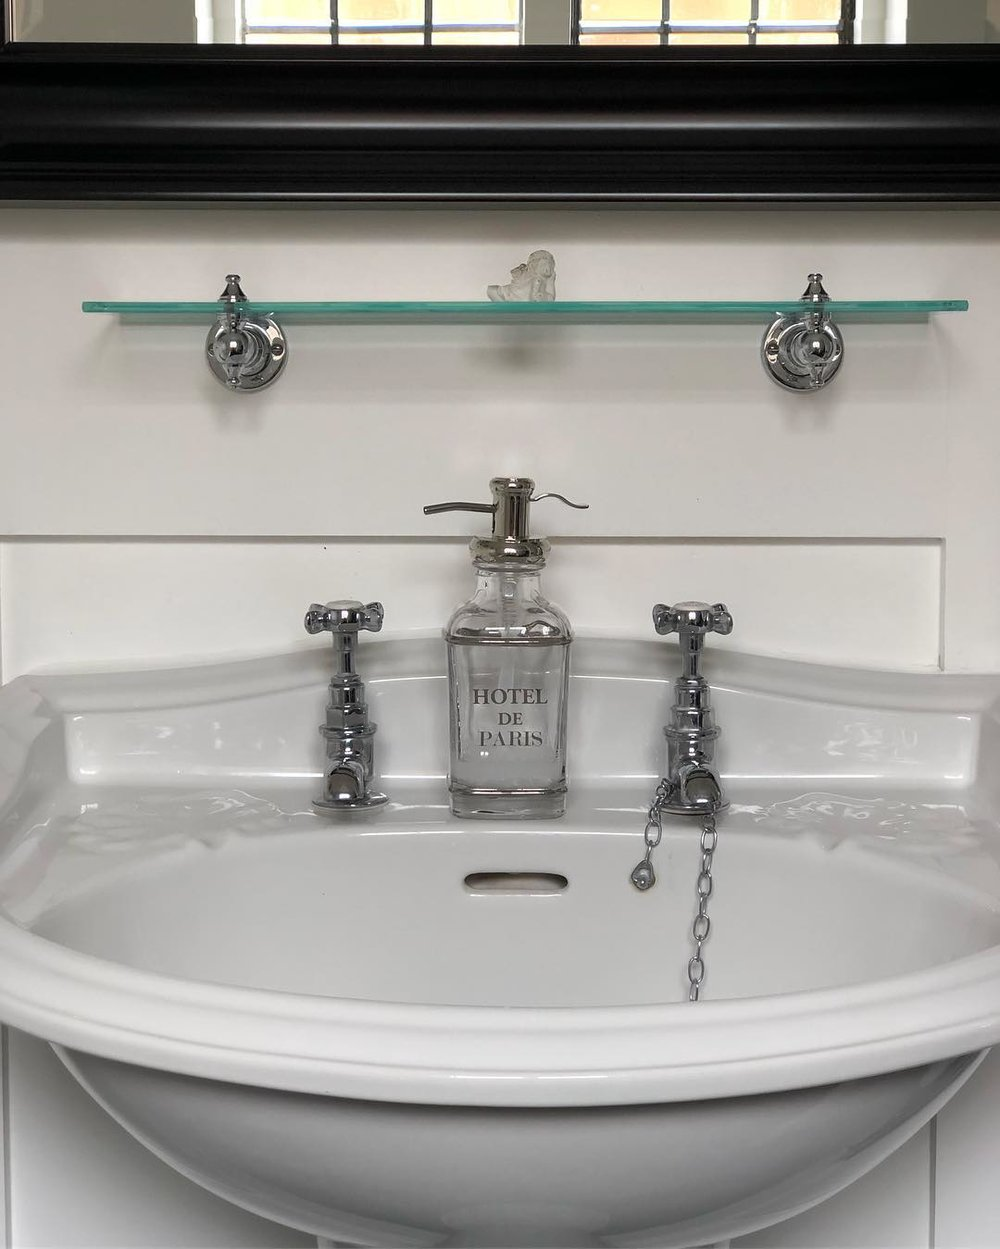 lefroy brooks traditional hot and cold bath taps with top cross handles and porcelain insets in polished chrome - the ultimate guide to luxury plumbing by the delight of design